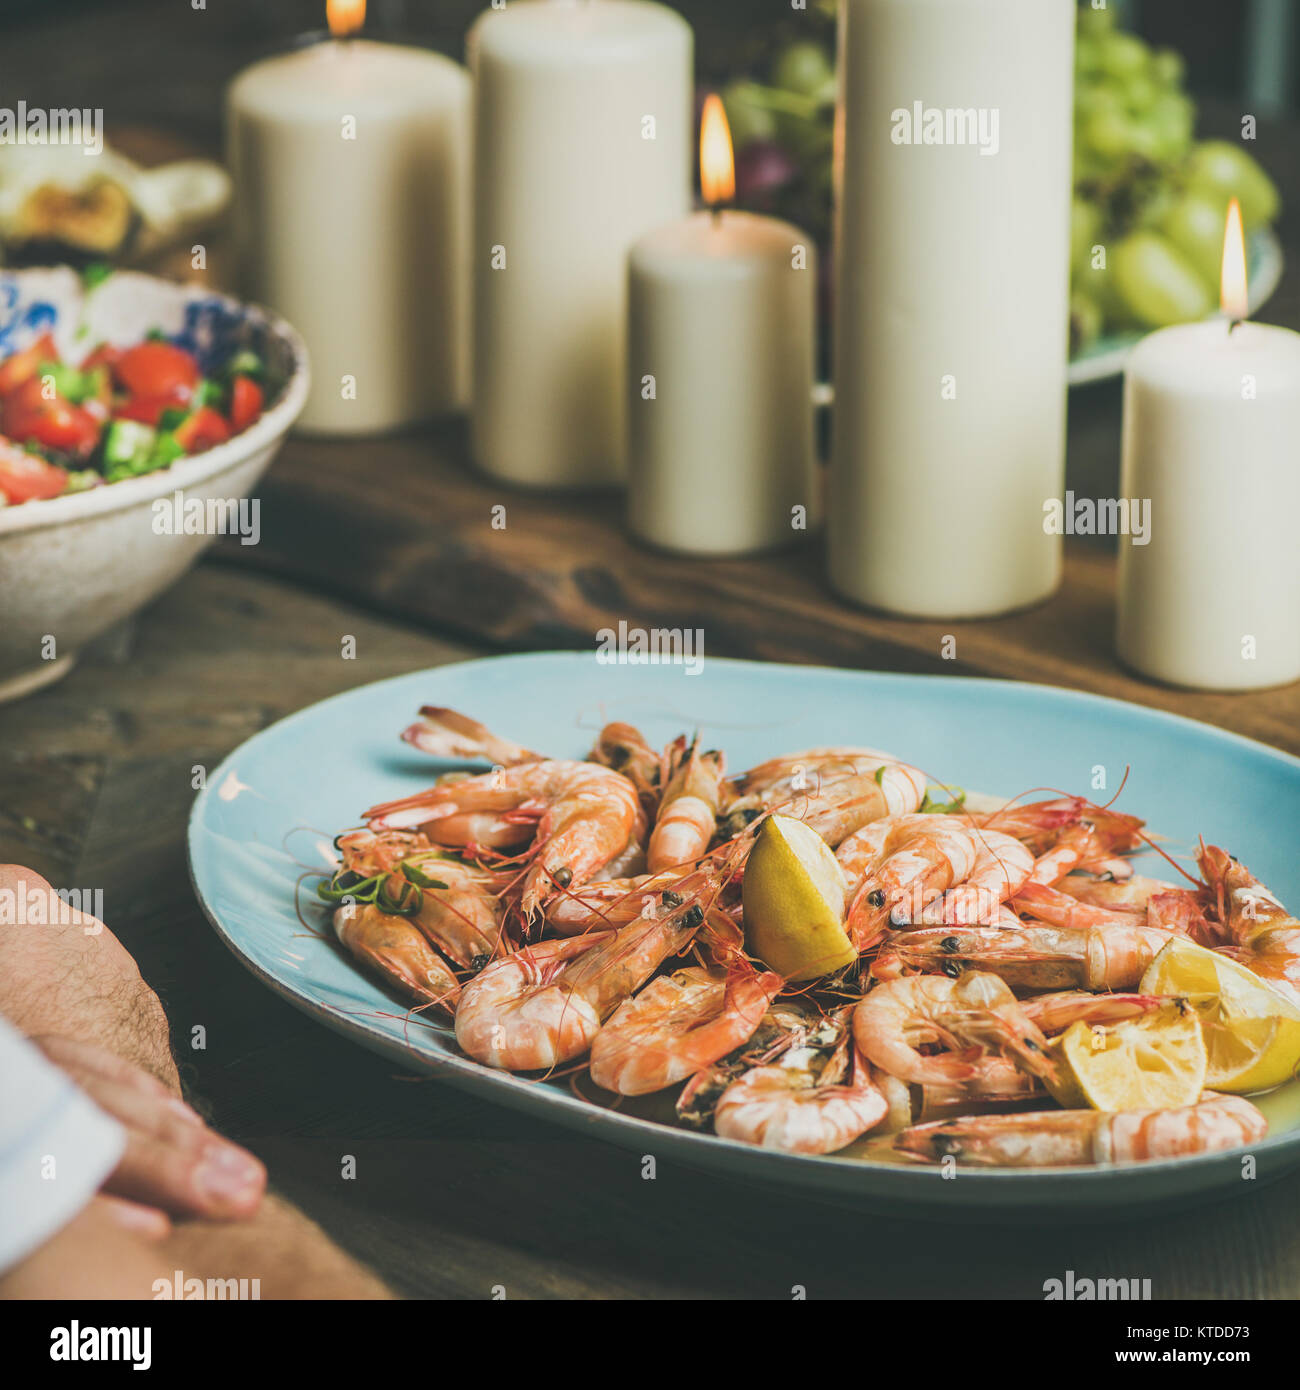 Salad, shrimps and candles on wooden table, square crop - Stock Image